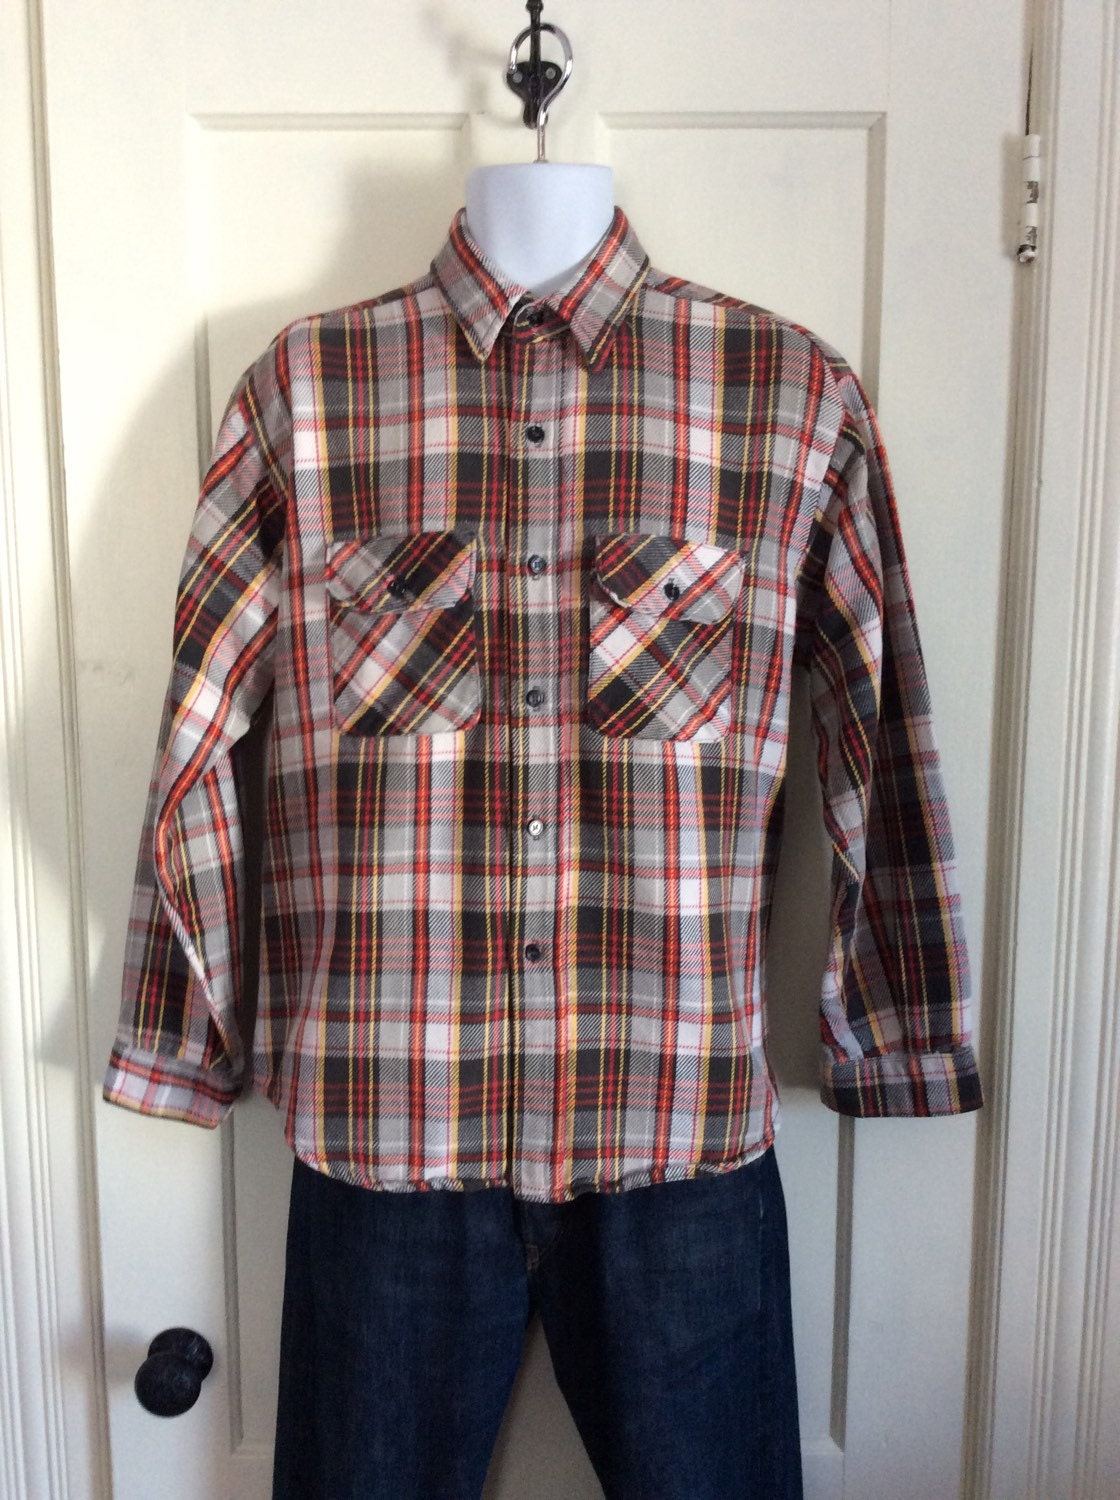 Vintage 1970 39 s 5 brother heavy flannel plaid mens shirt for Heavy plaid flannel shirt